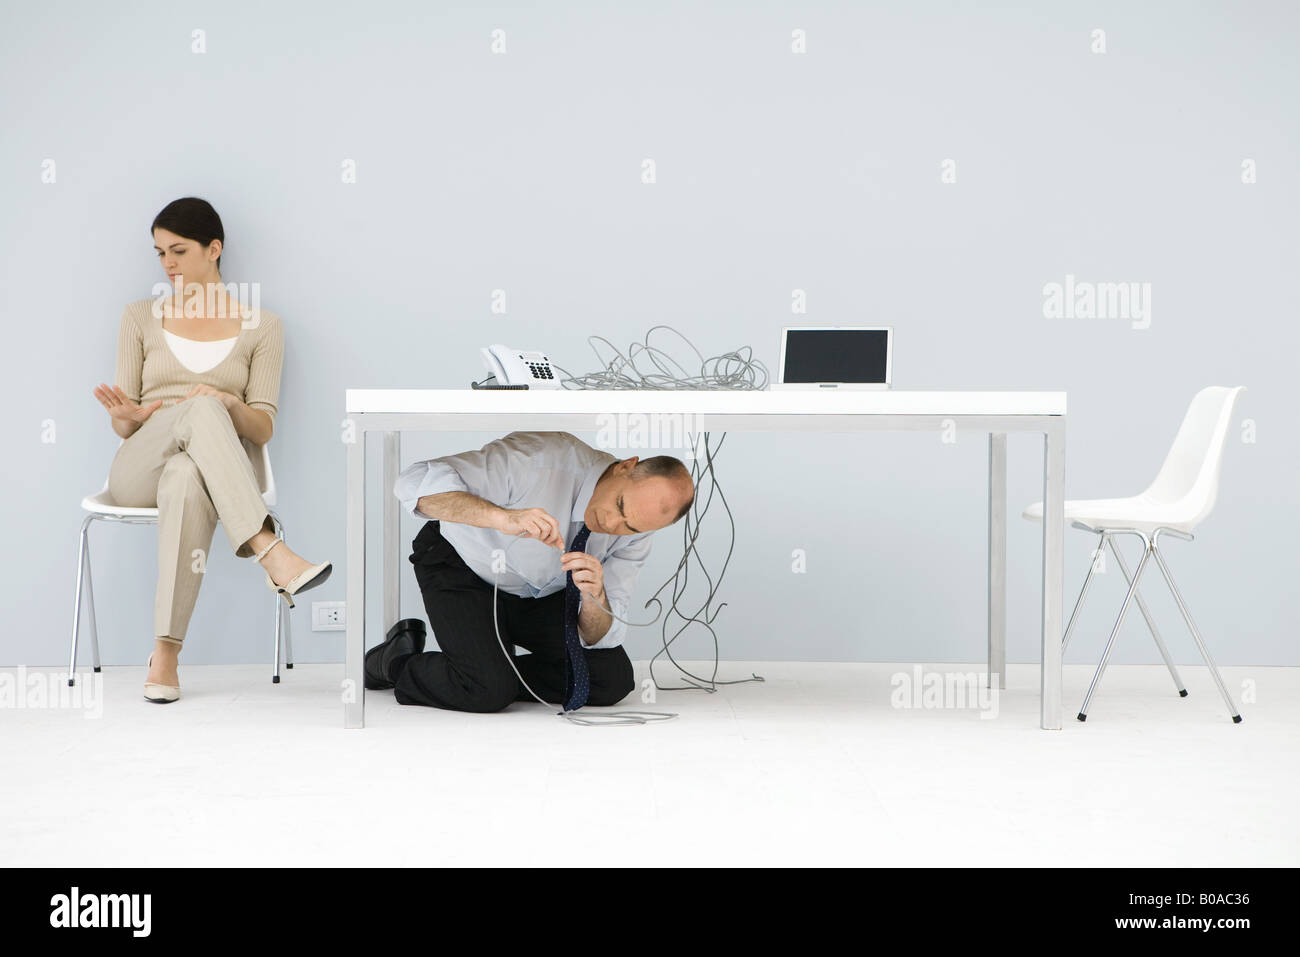 Man kneeling under desk, connecting tangled wires, woman sitting in chair, looking at hand - Stock Image